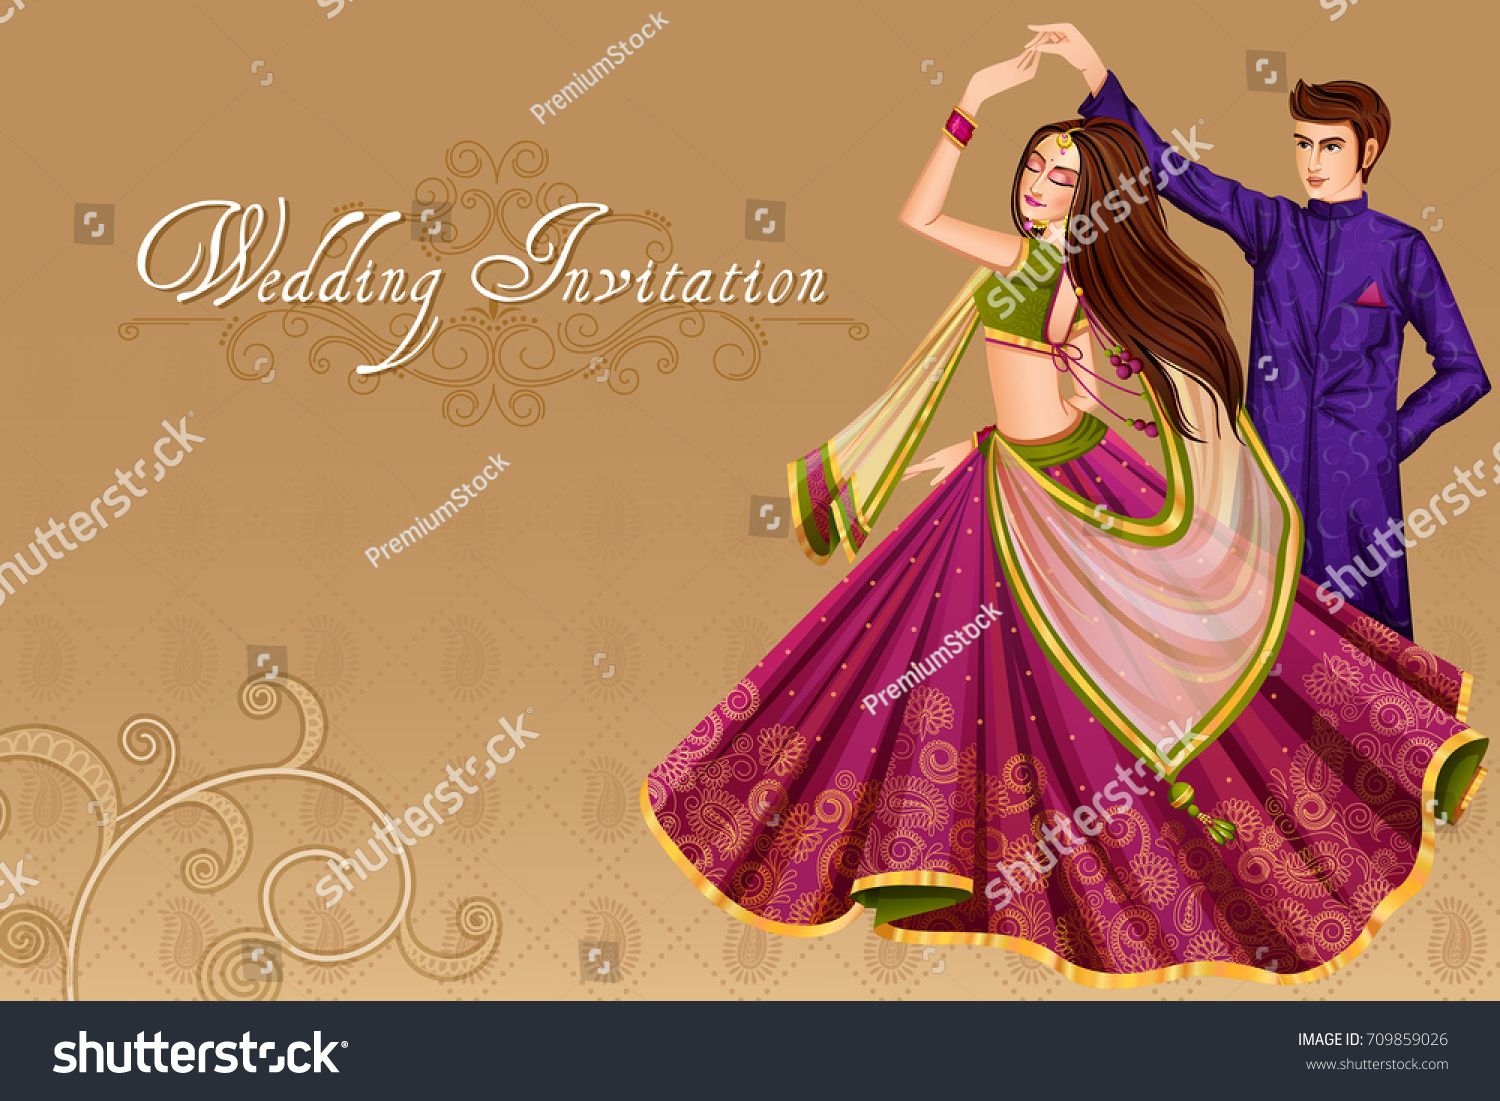 Vector Design Of Indian Couple Dancing In Wedding Sangeet Ceremony Of India In 2020 Traditional Indian Wedding Cards Indian Wedding Couple Wedding Card Design Indian